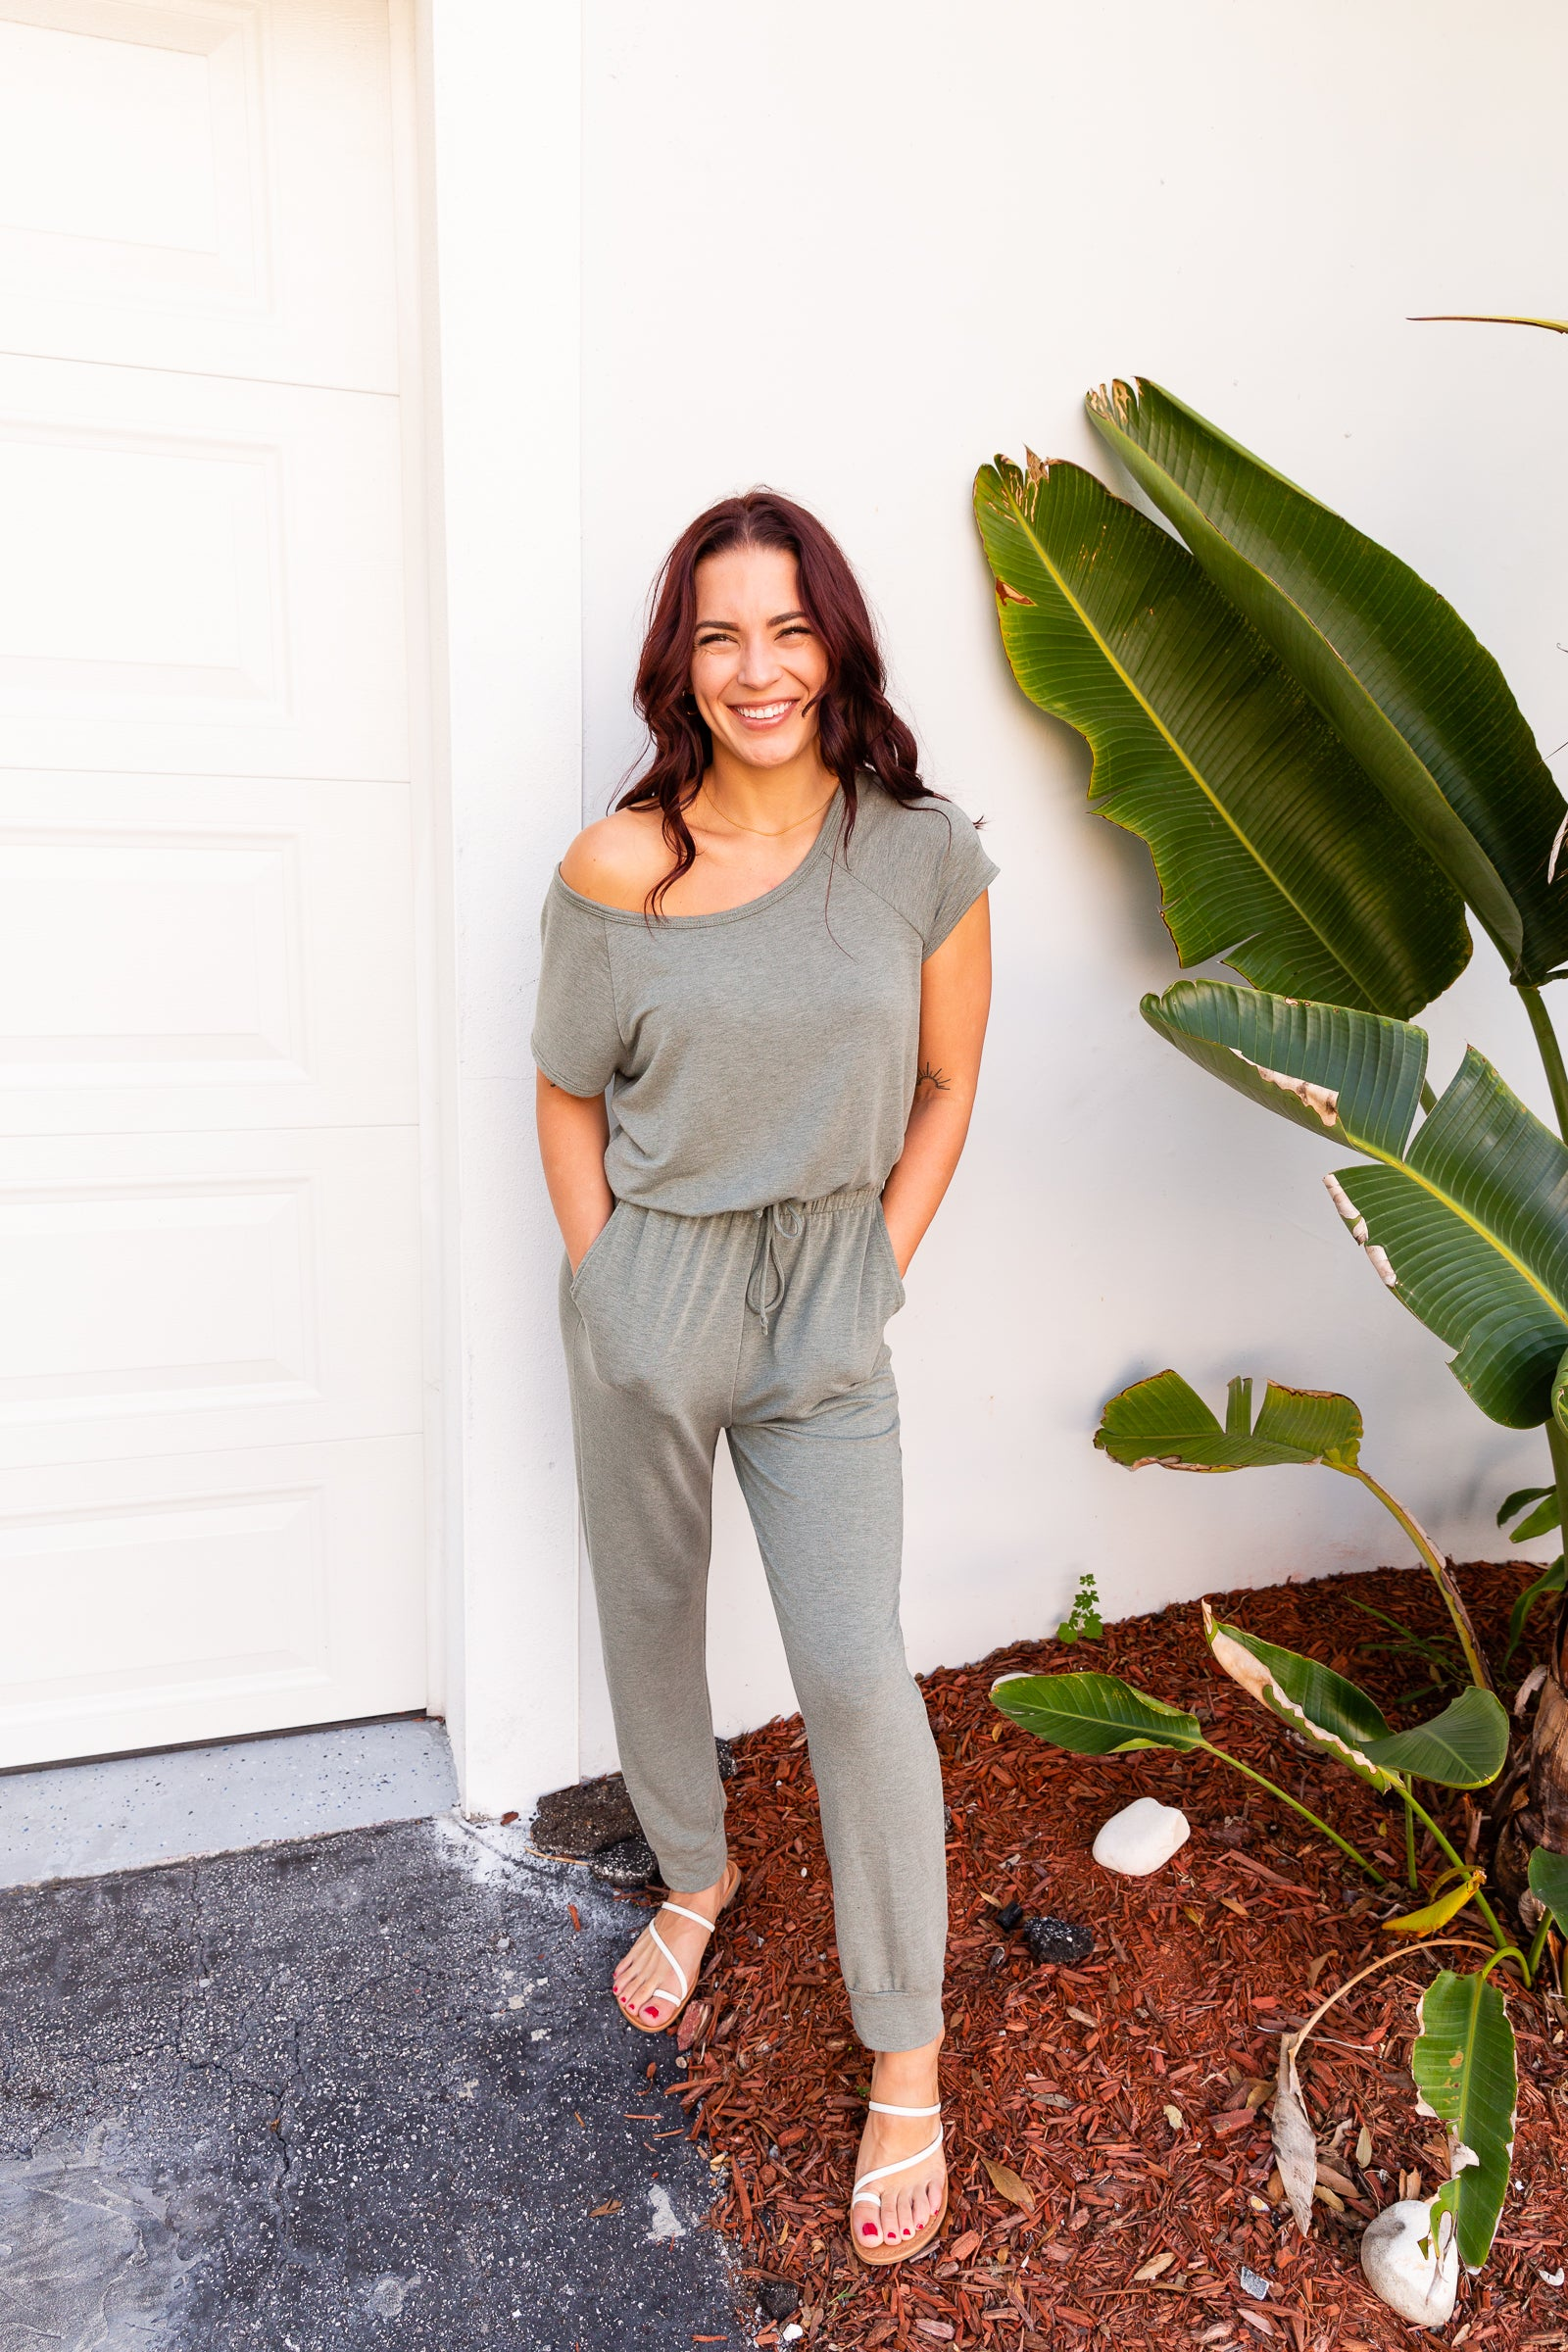 Short sleeves attach to a u-neckline on an oversized and relaxed bodice meeting an elastic waistband with a drawstring tie going down into side pockets and skinny pant legs with a banded ankle cuff.